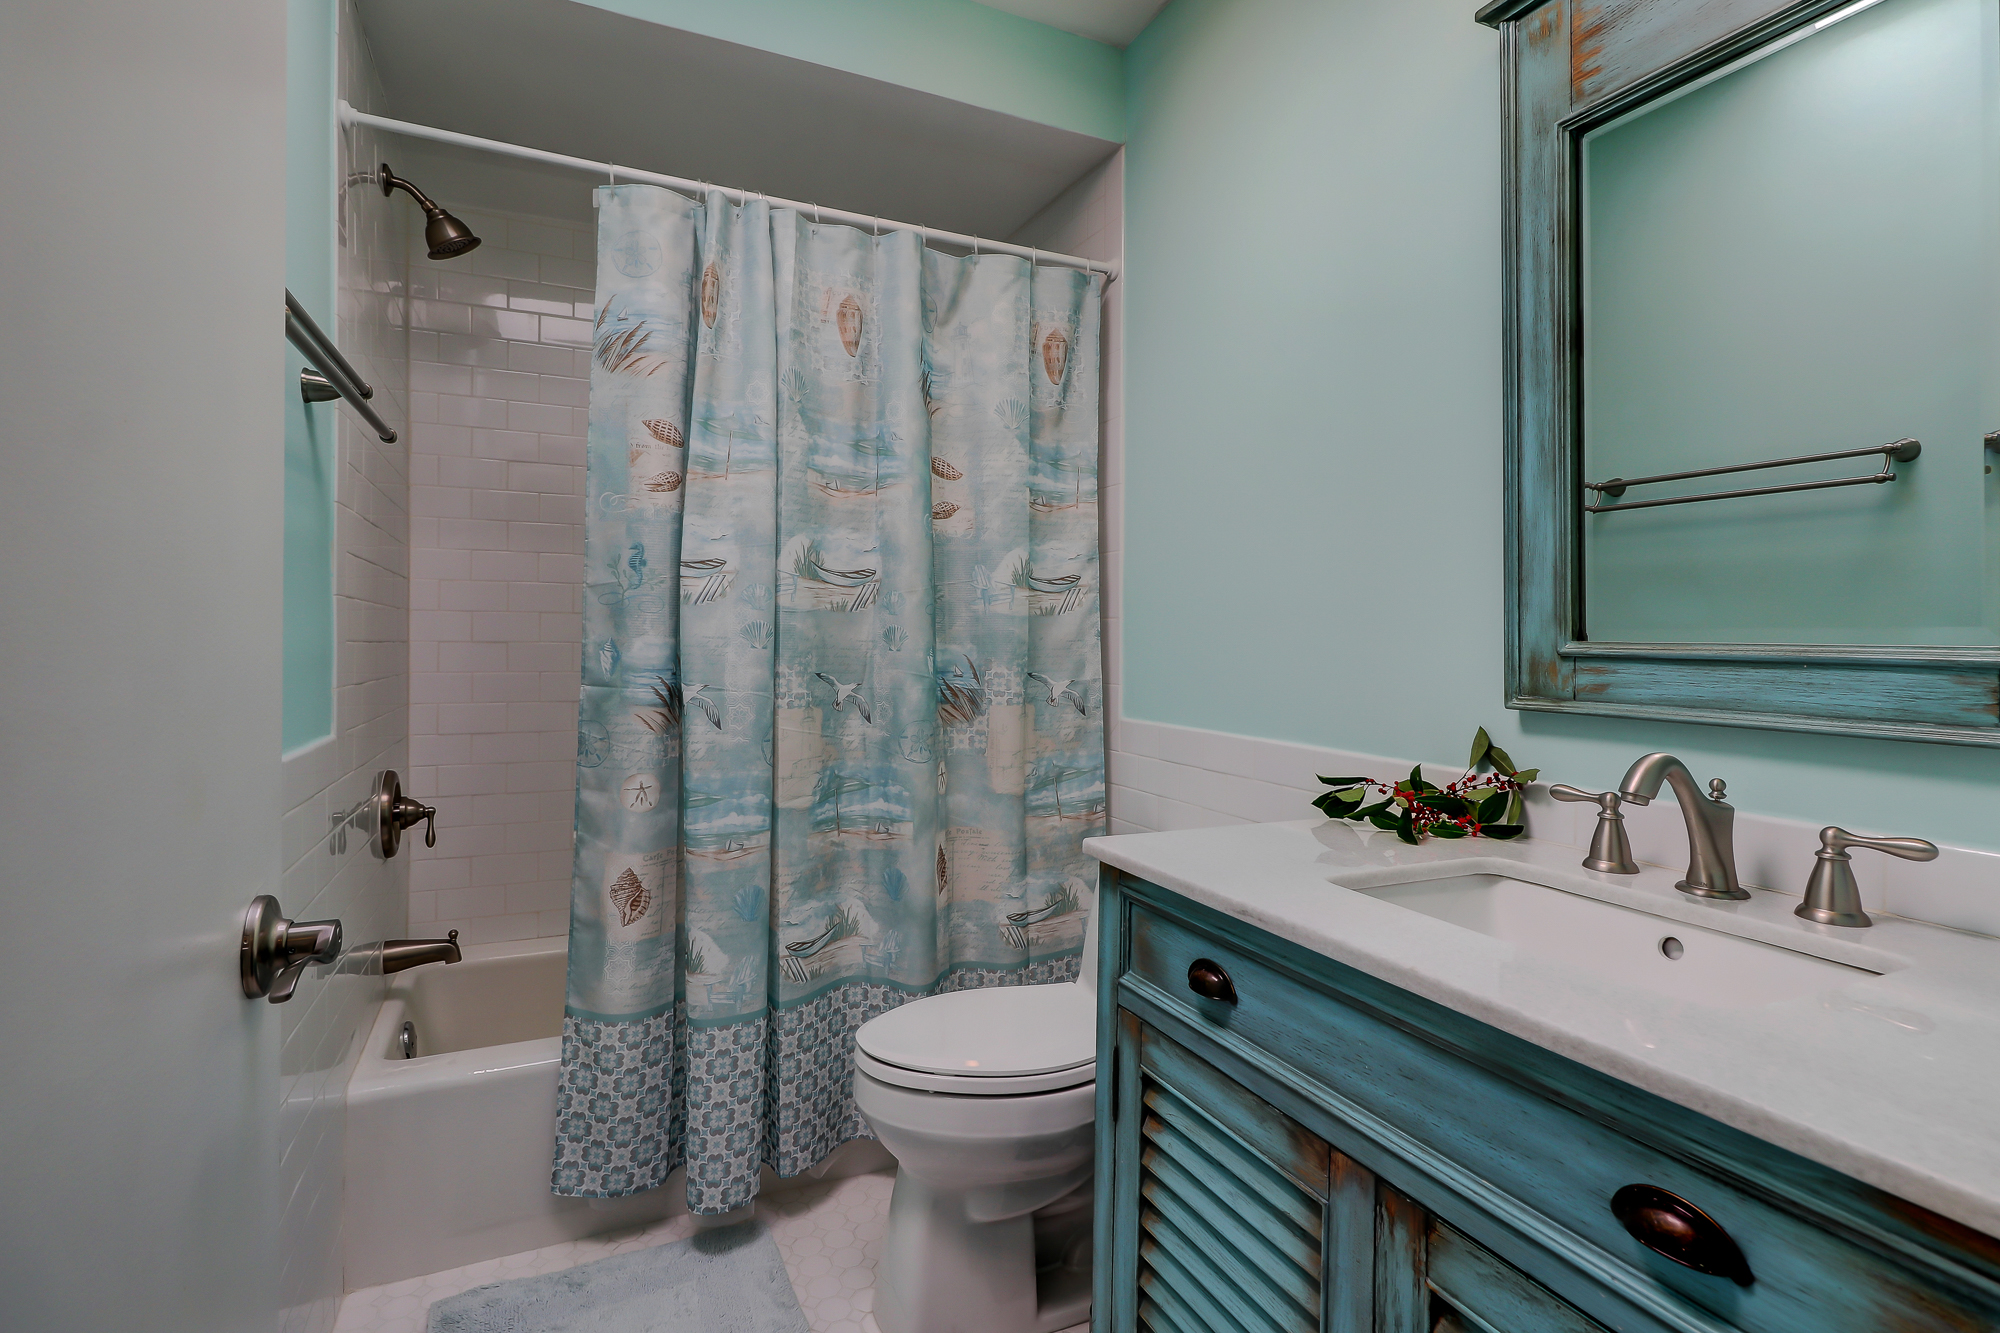 Completely updated/remodeled Guest Bathroom. 8 Bradley Beach, Hilton Head Island, MLS# 388240